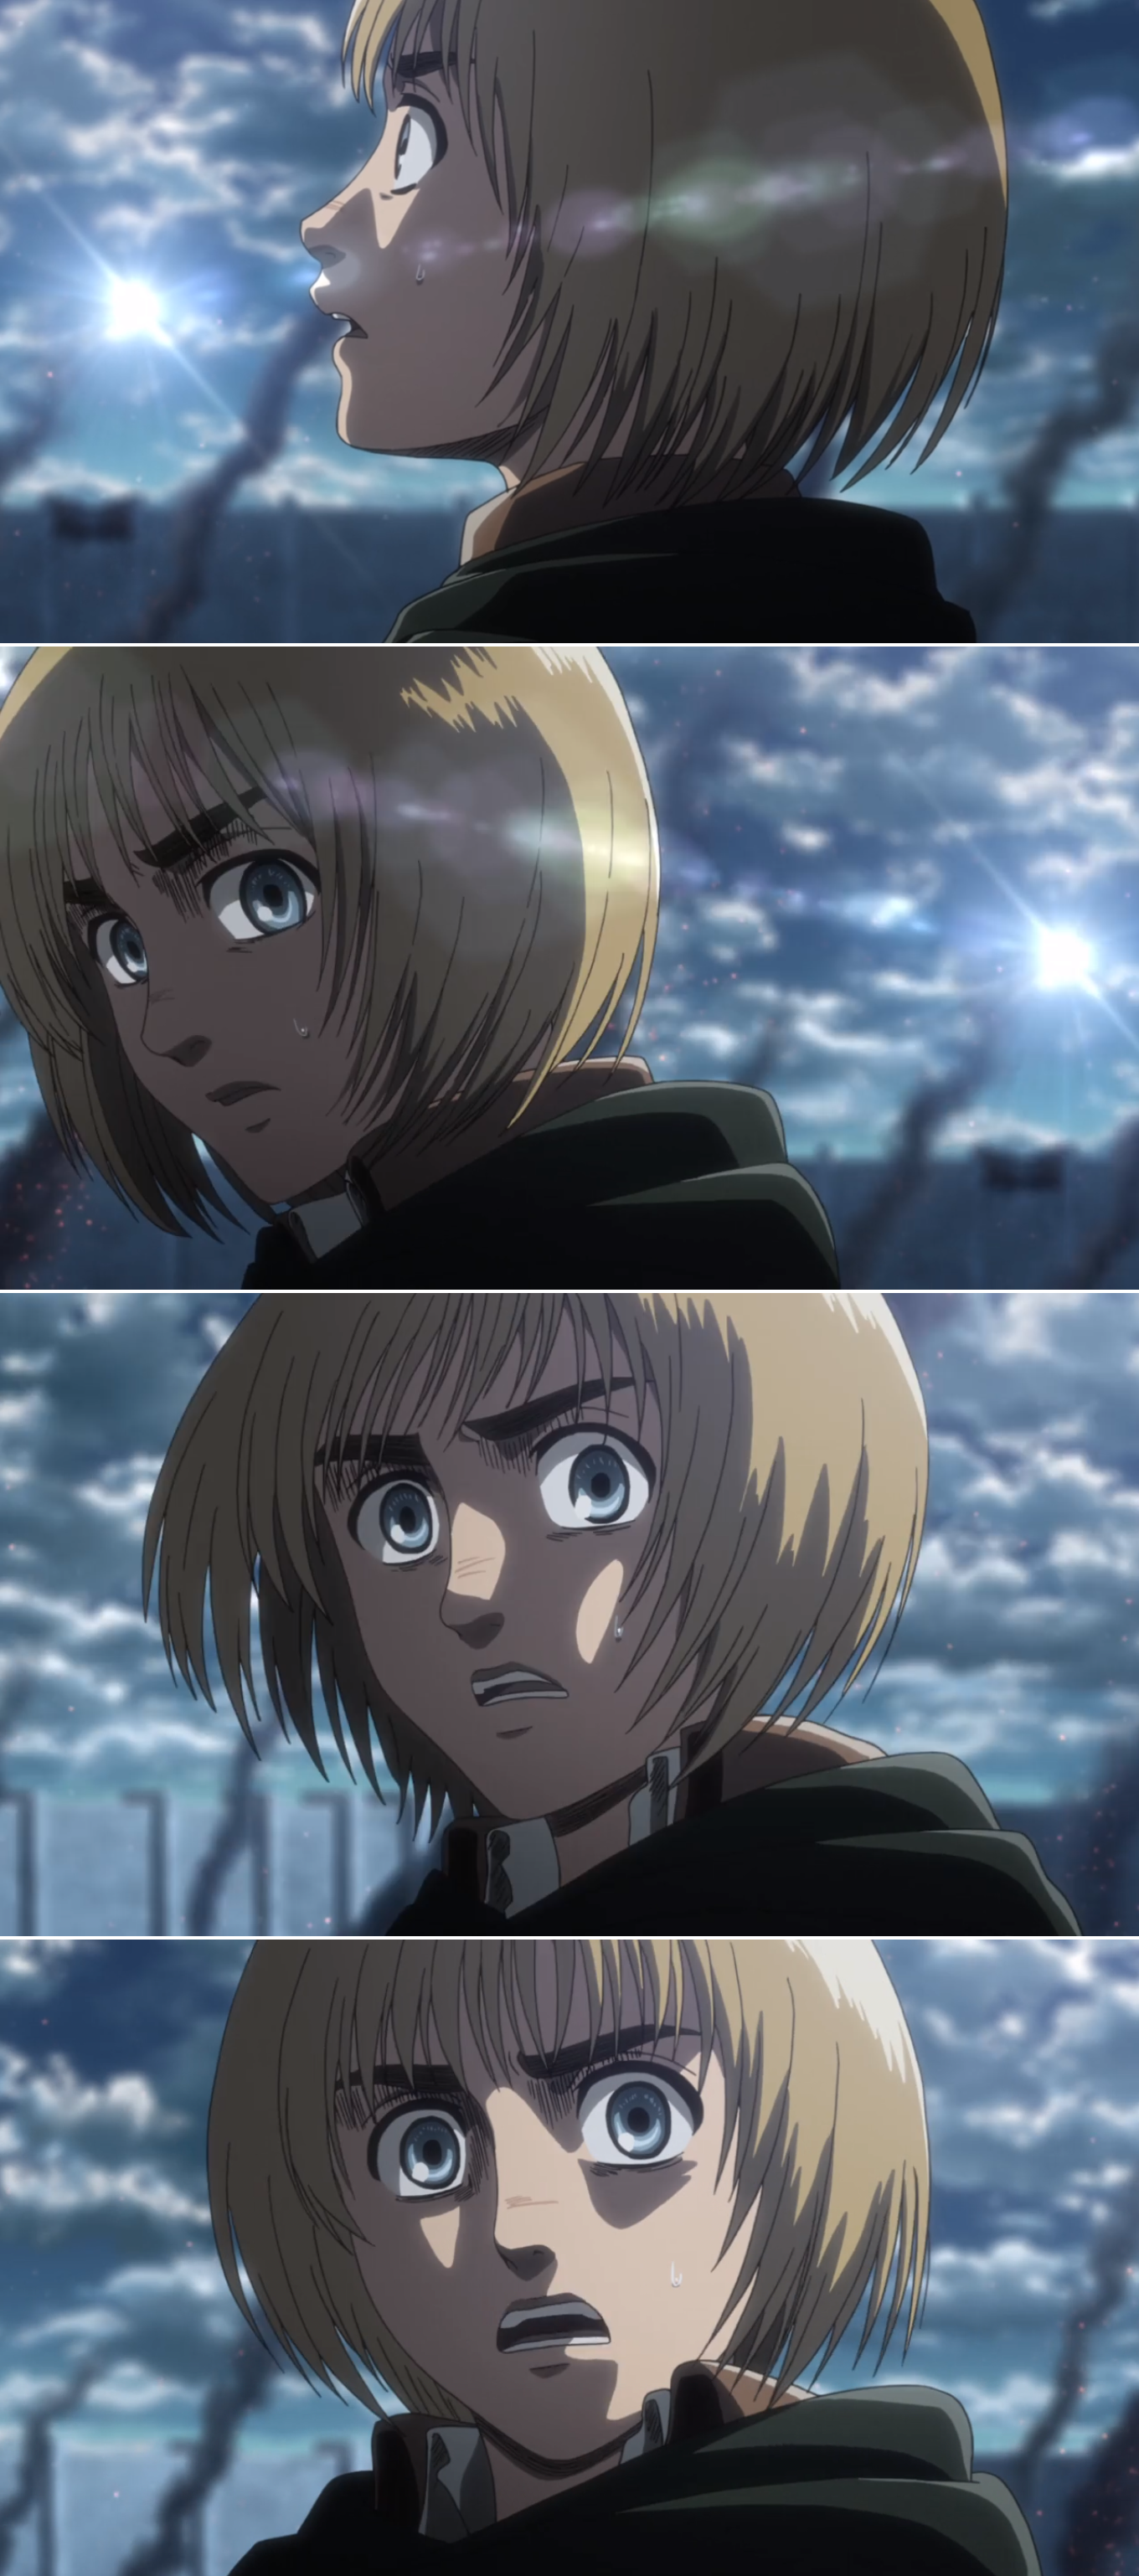 precious boy (With images) Attack on titan jean, Anime